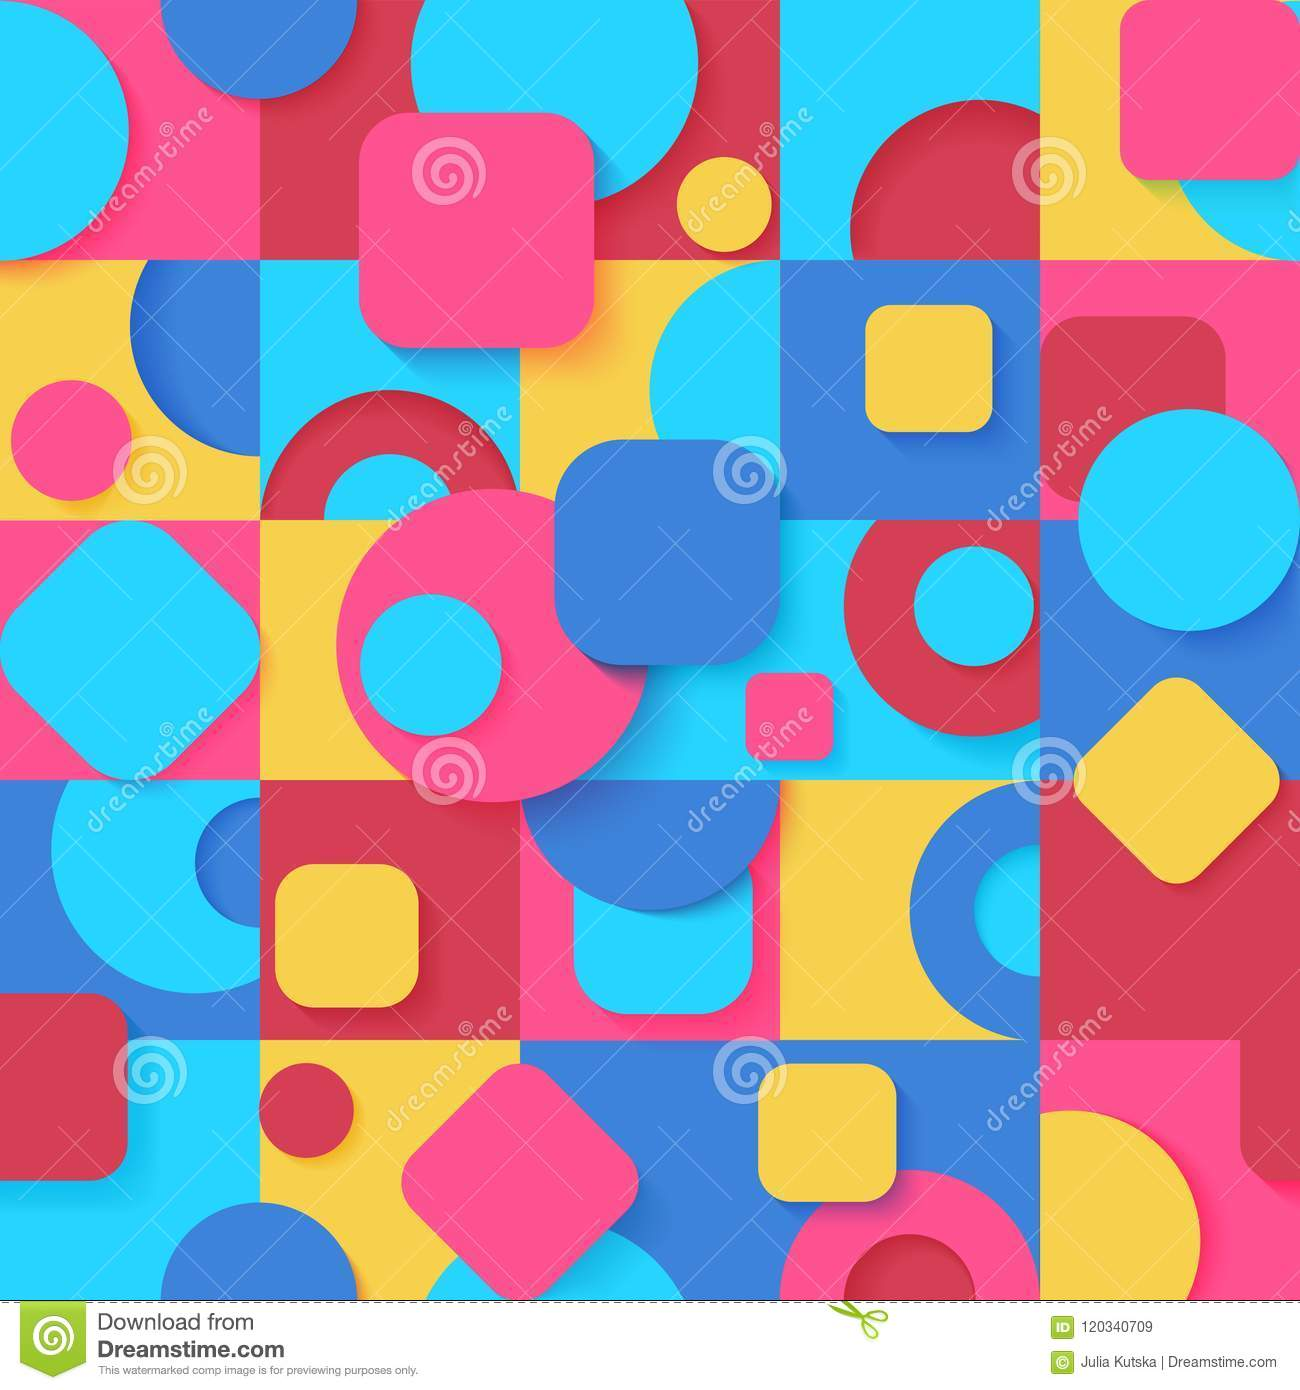 Seamless Pop Art Colorful Abstract Geometric Shapes Pattern Bright